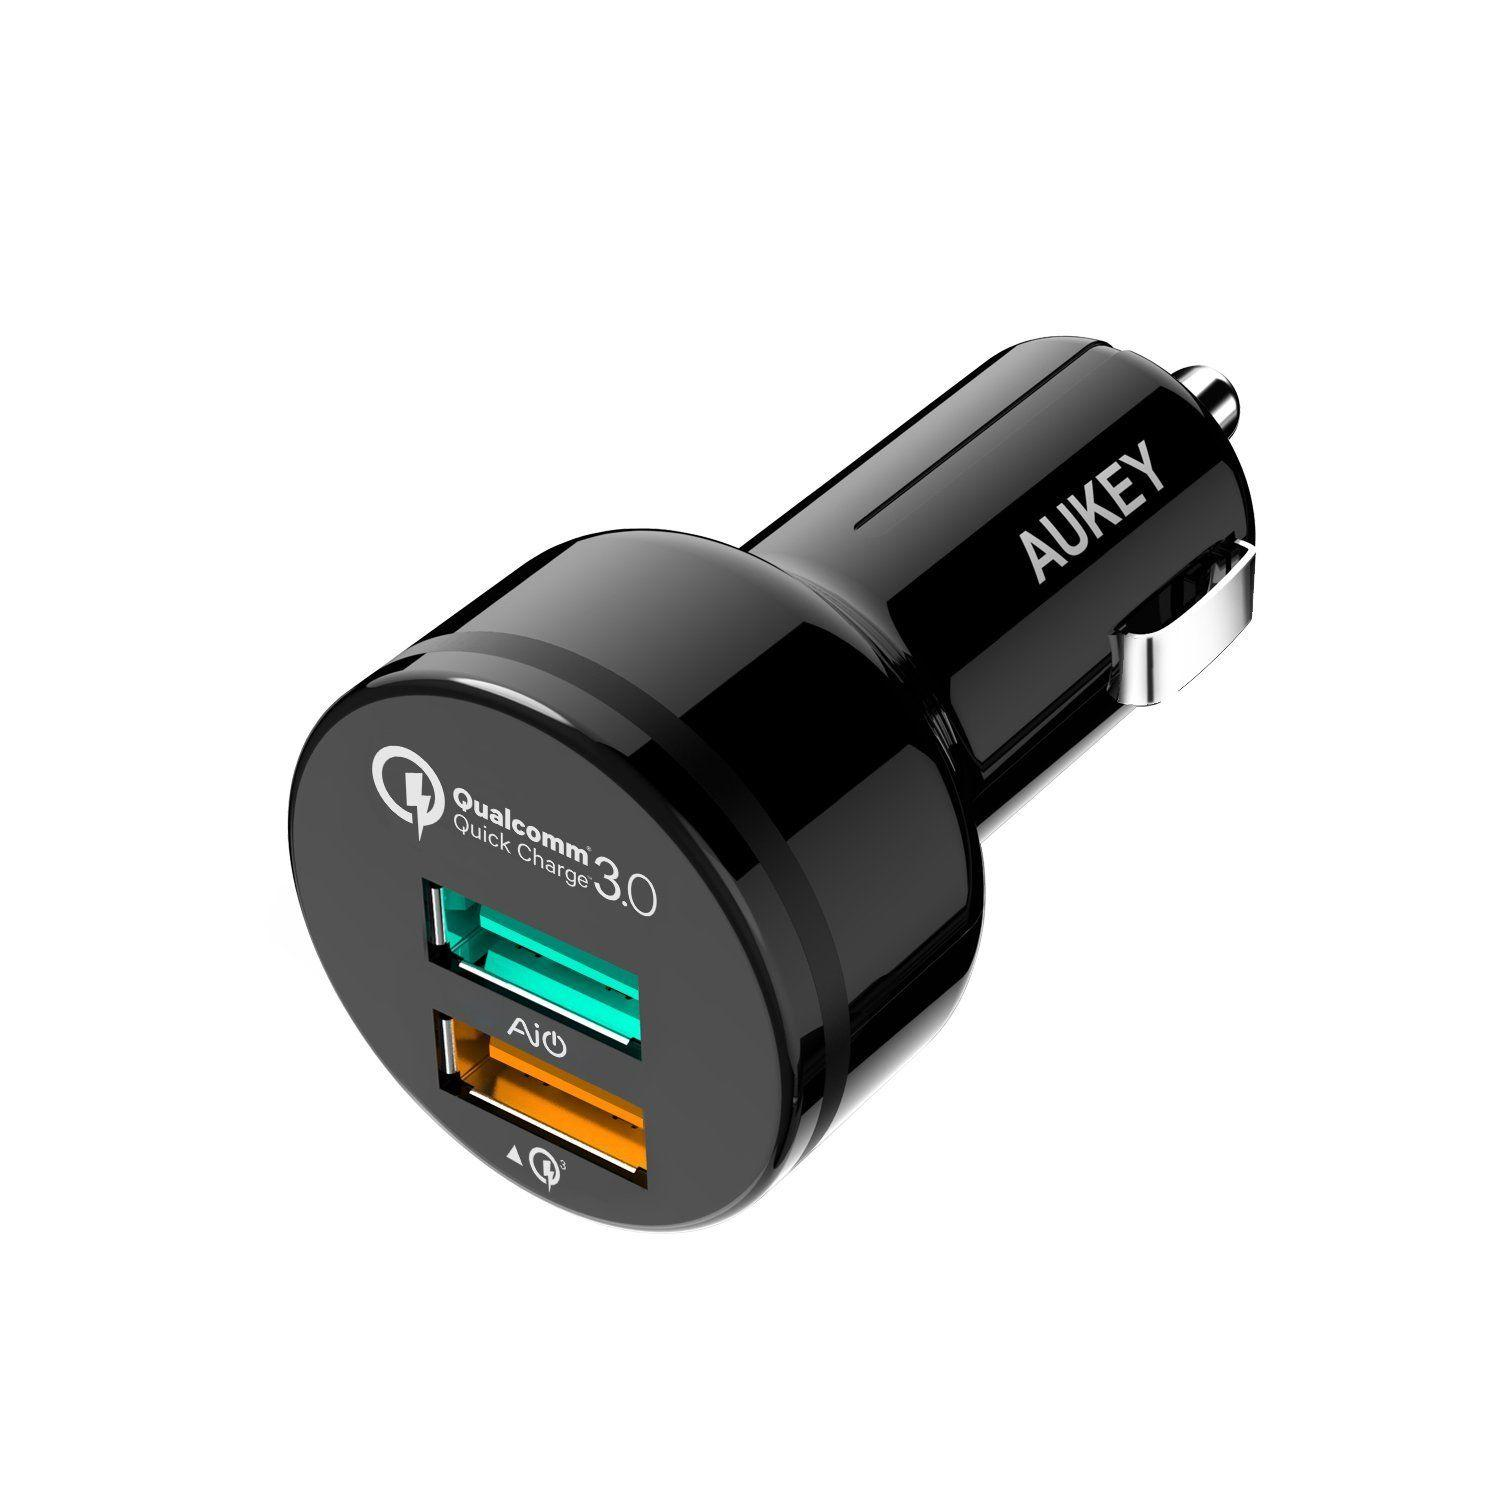 AUKEY Quick Charge 3.0 Caricatore per